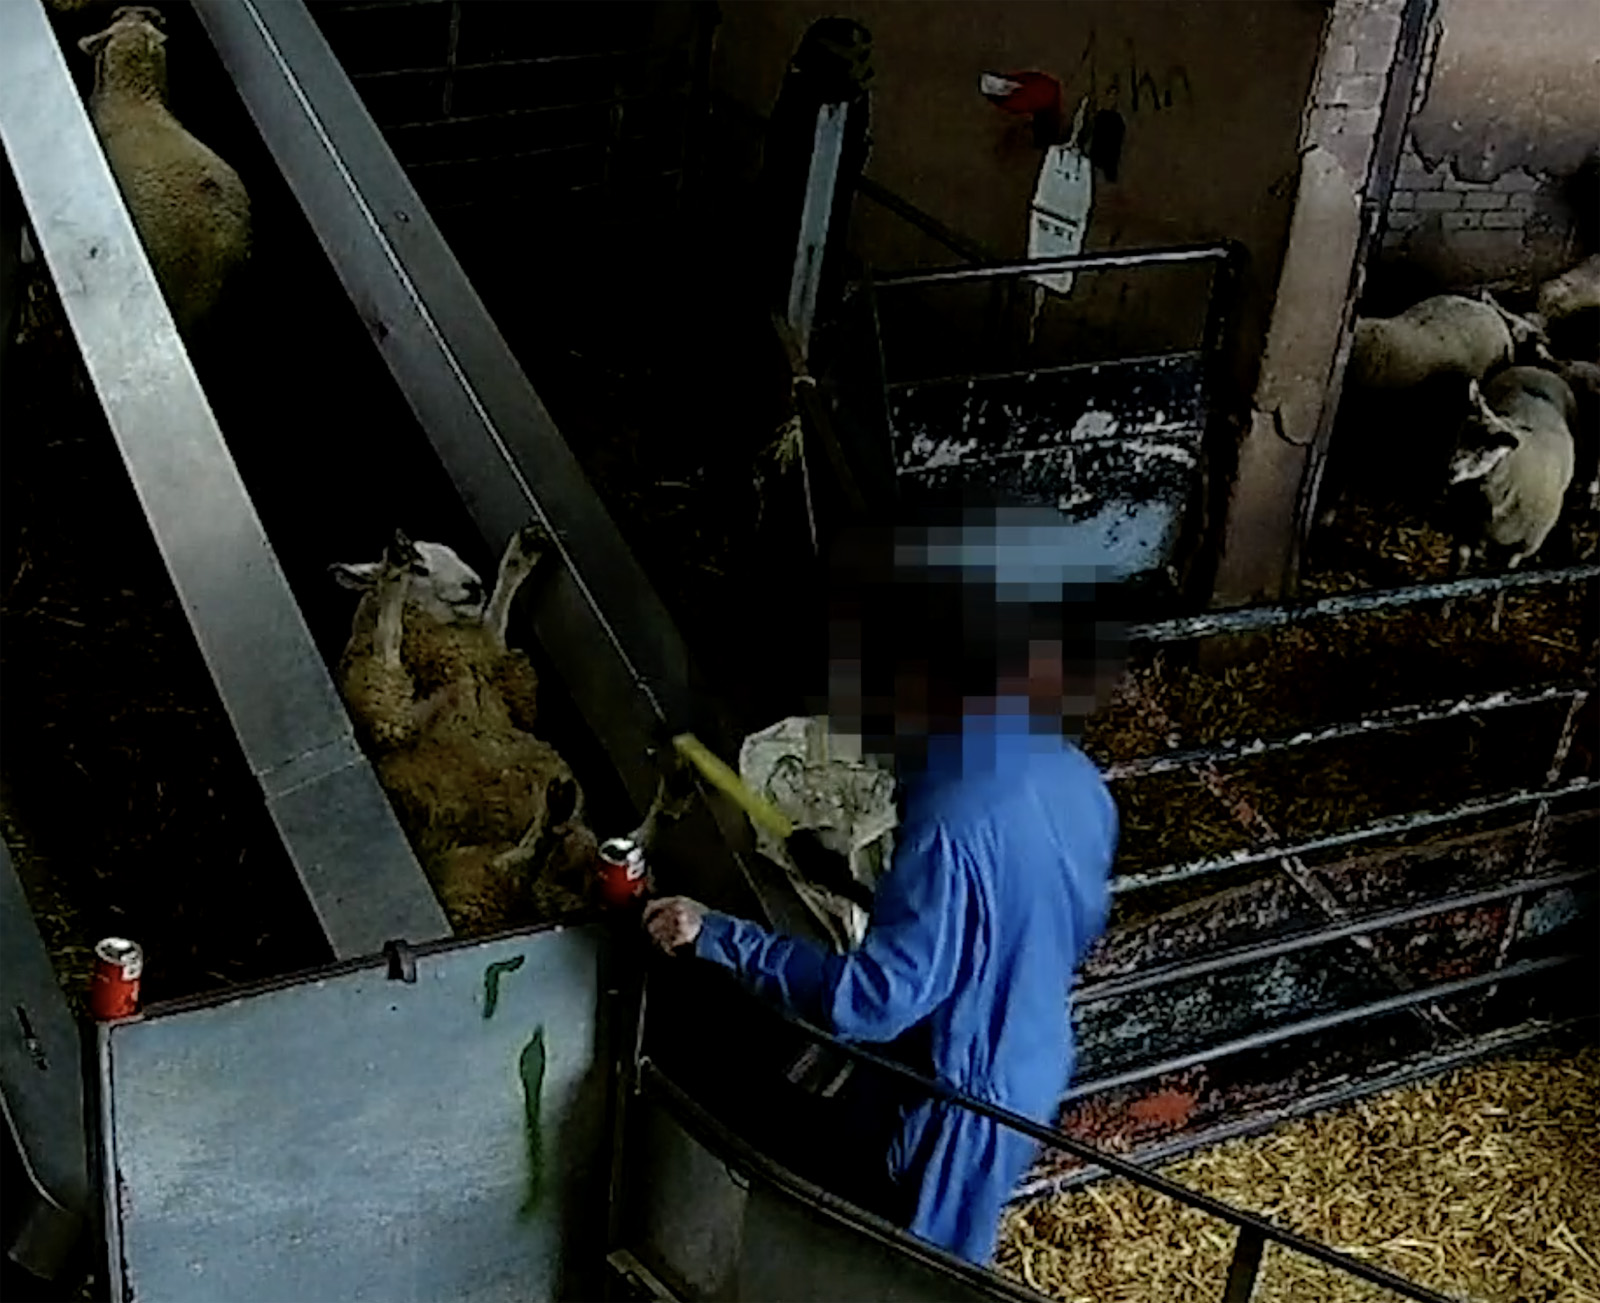 A sheep has been thrown on her back onto the conveyor belt